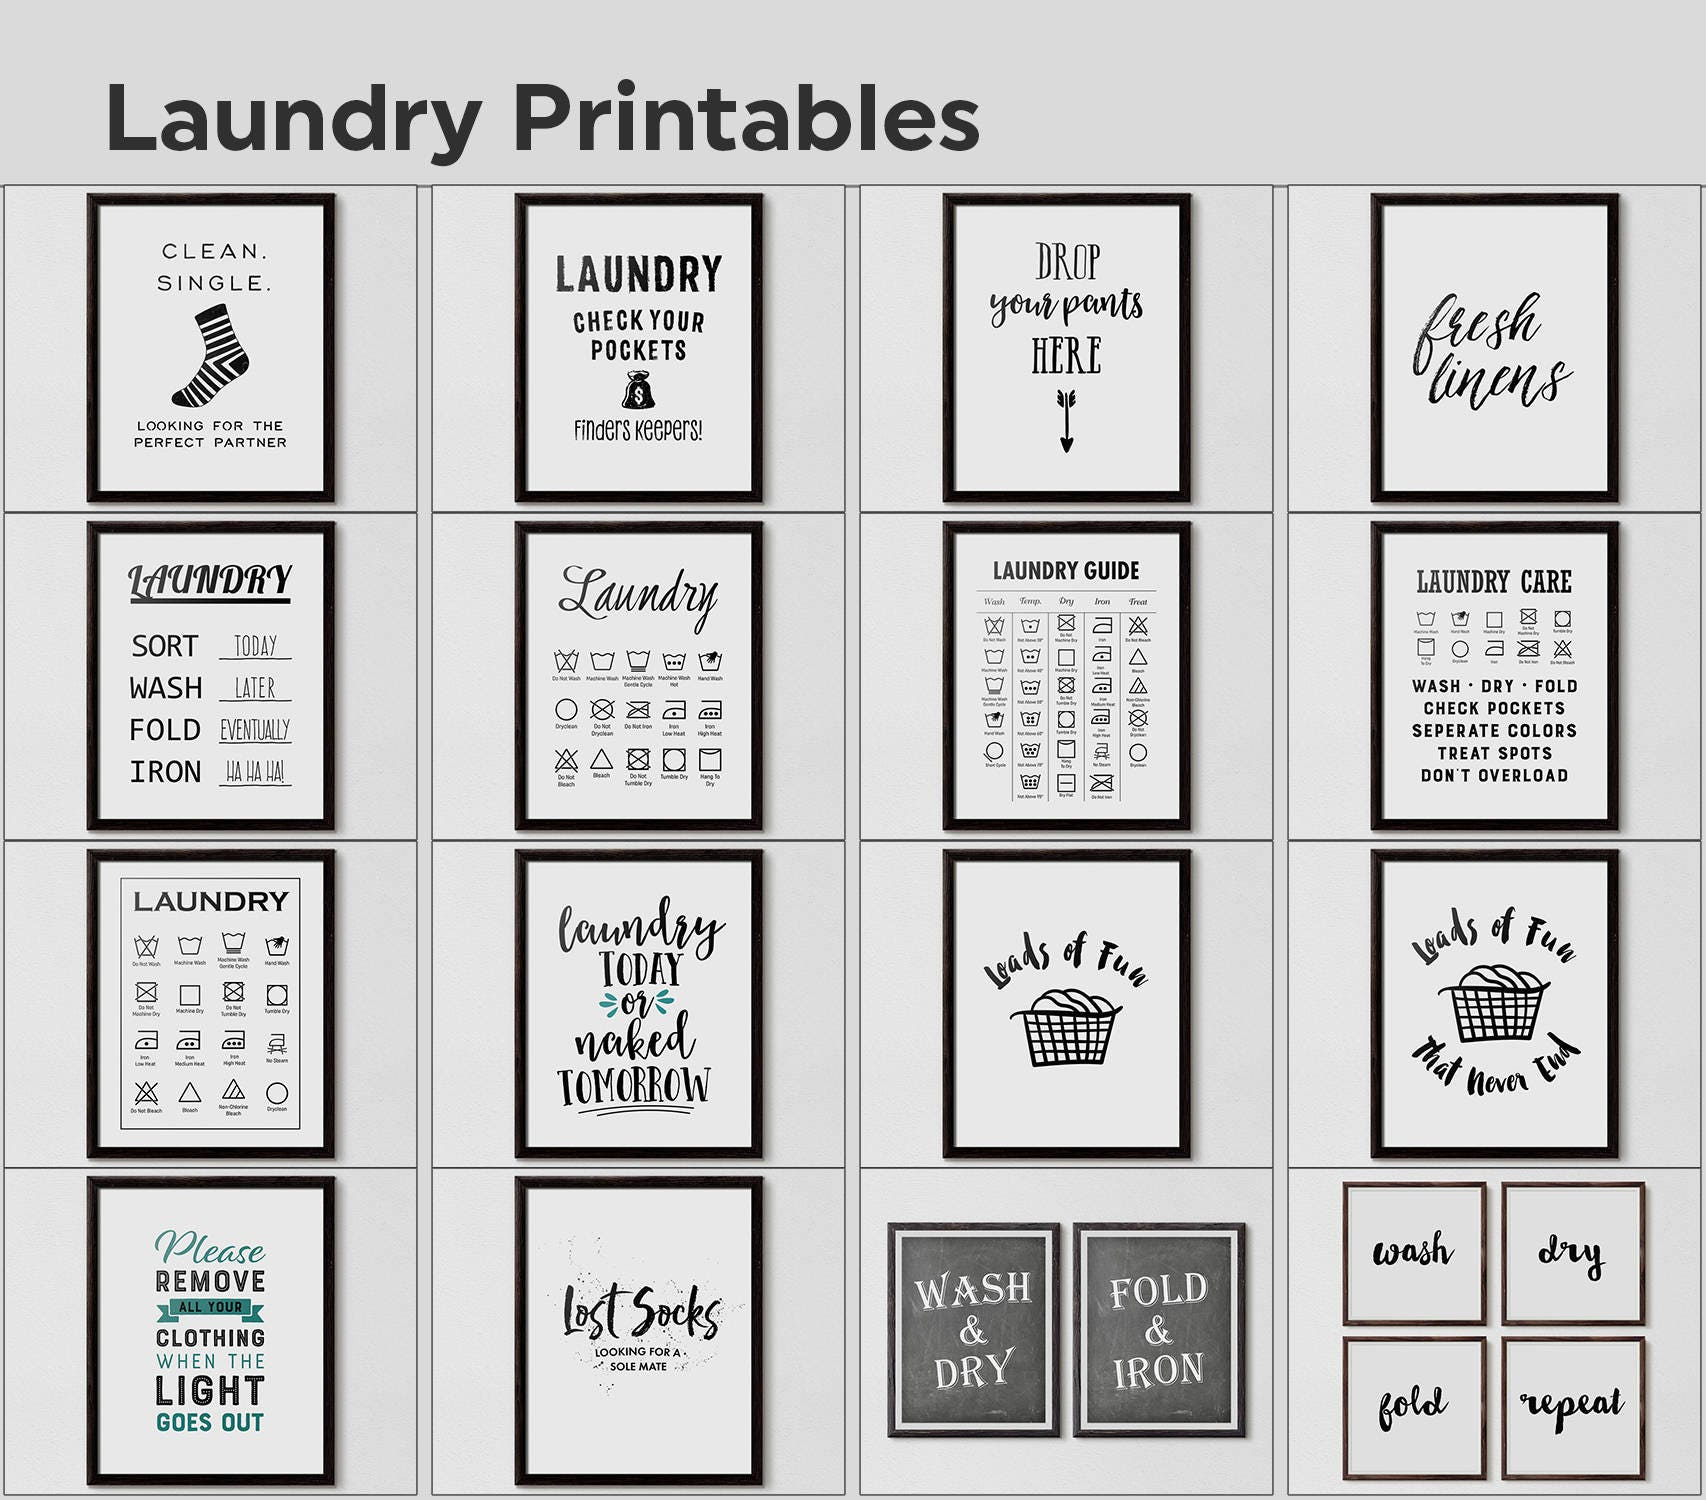 image about Laundry Symbols Printable called Laundry Lead, Laundry Cheat Sheet, Laundry Symbols